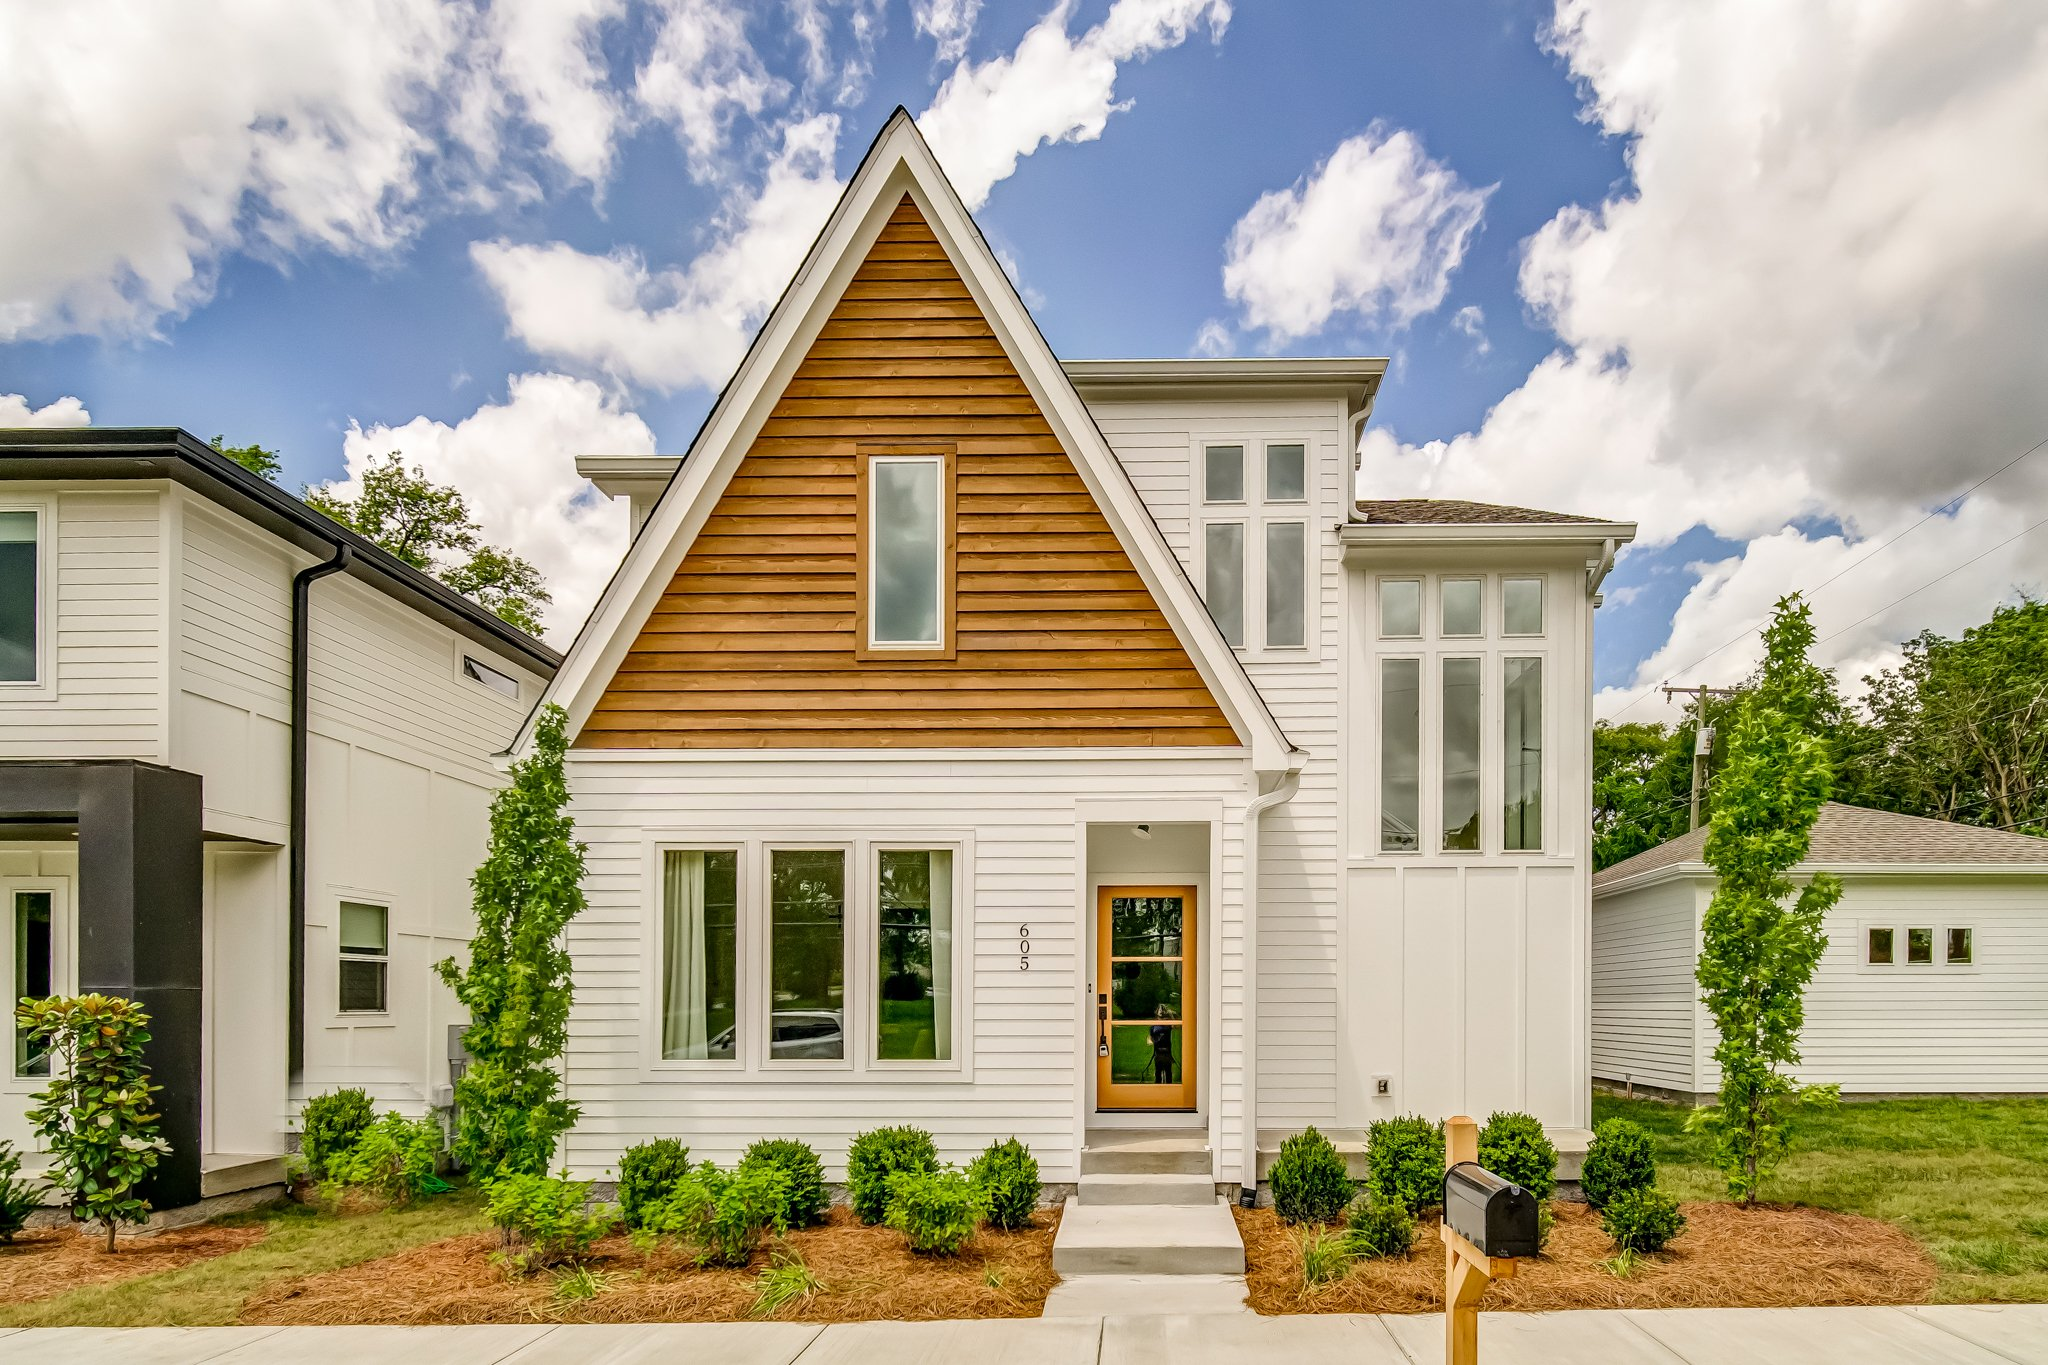 Beautiful Nashville, Tennessee home photographed by Cherokee Drone Services